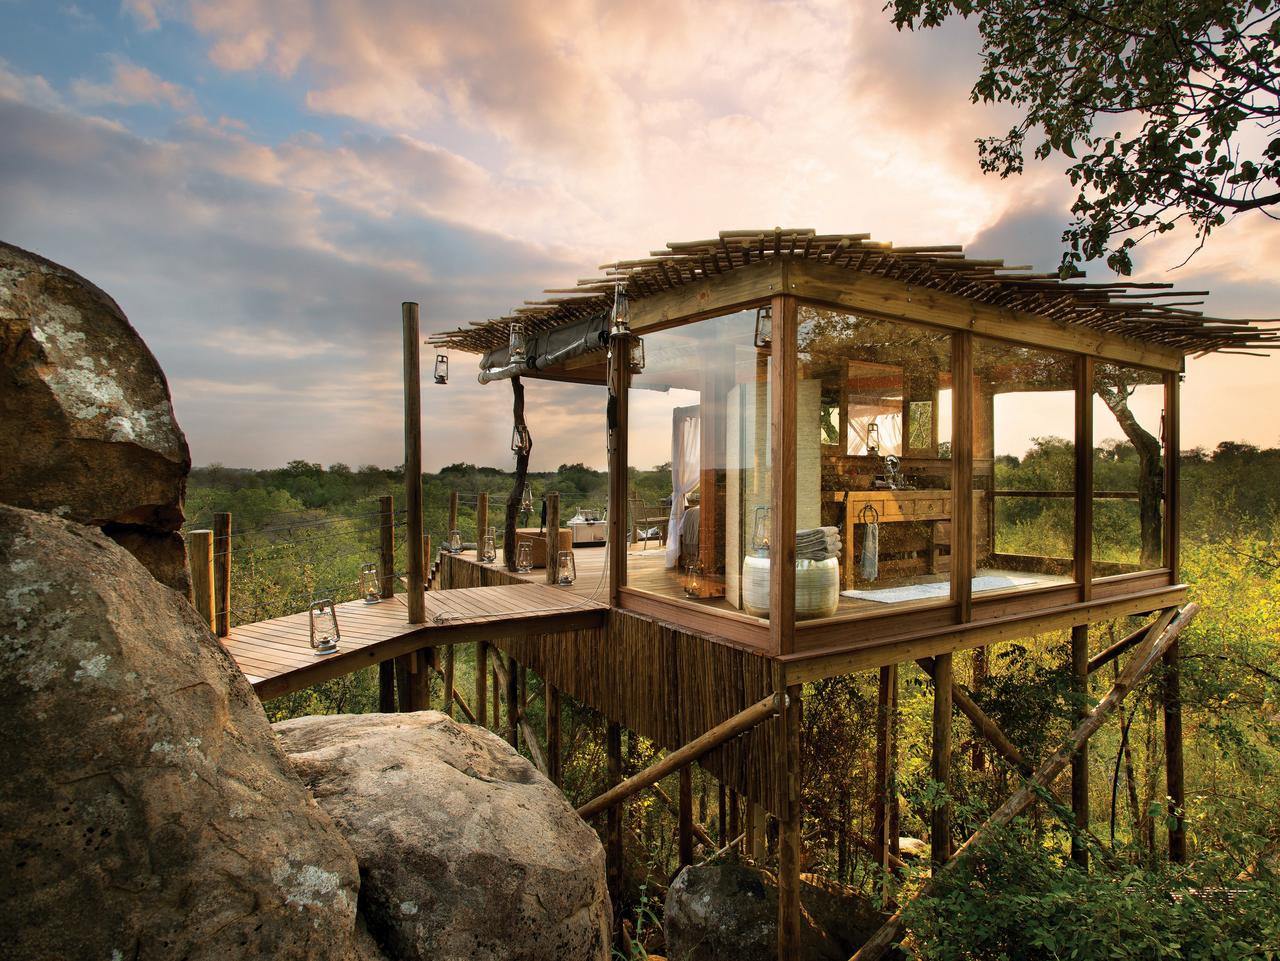 ESCAPE: SAFARI TREE HOUSES .. Tony Park story .. The Kingston tree house is built into a pile of granite boulders, with a commanding view of the African bush. Picture: supplied by Lion Sands.